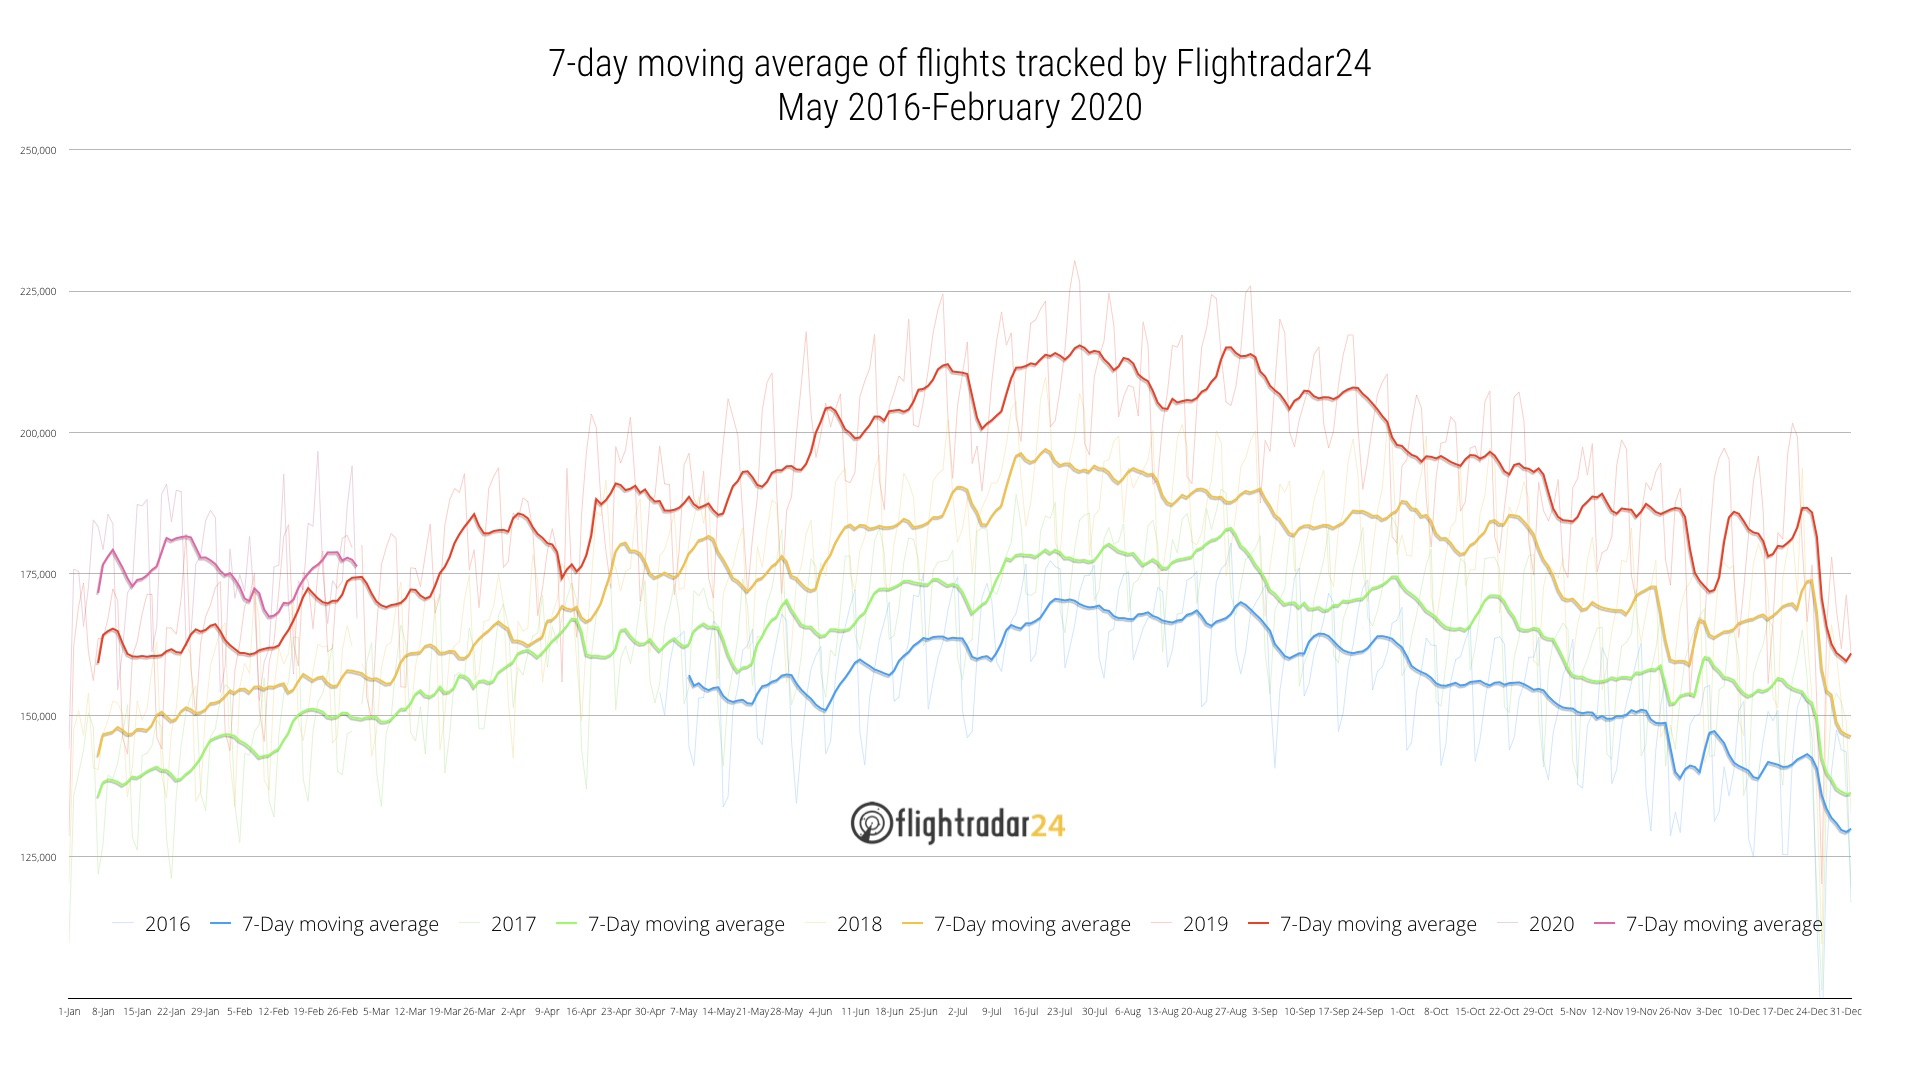 Total daily flights tracked May 2016 to February 2020